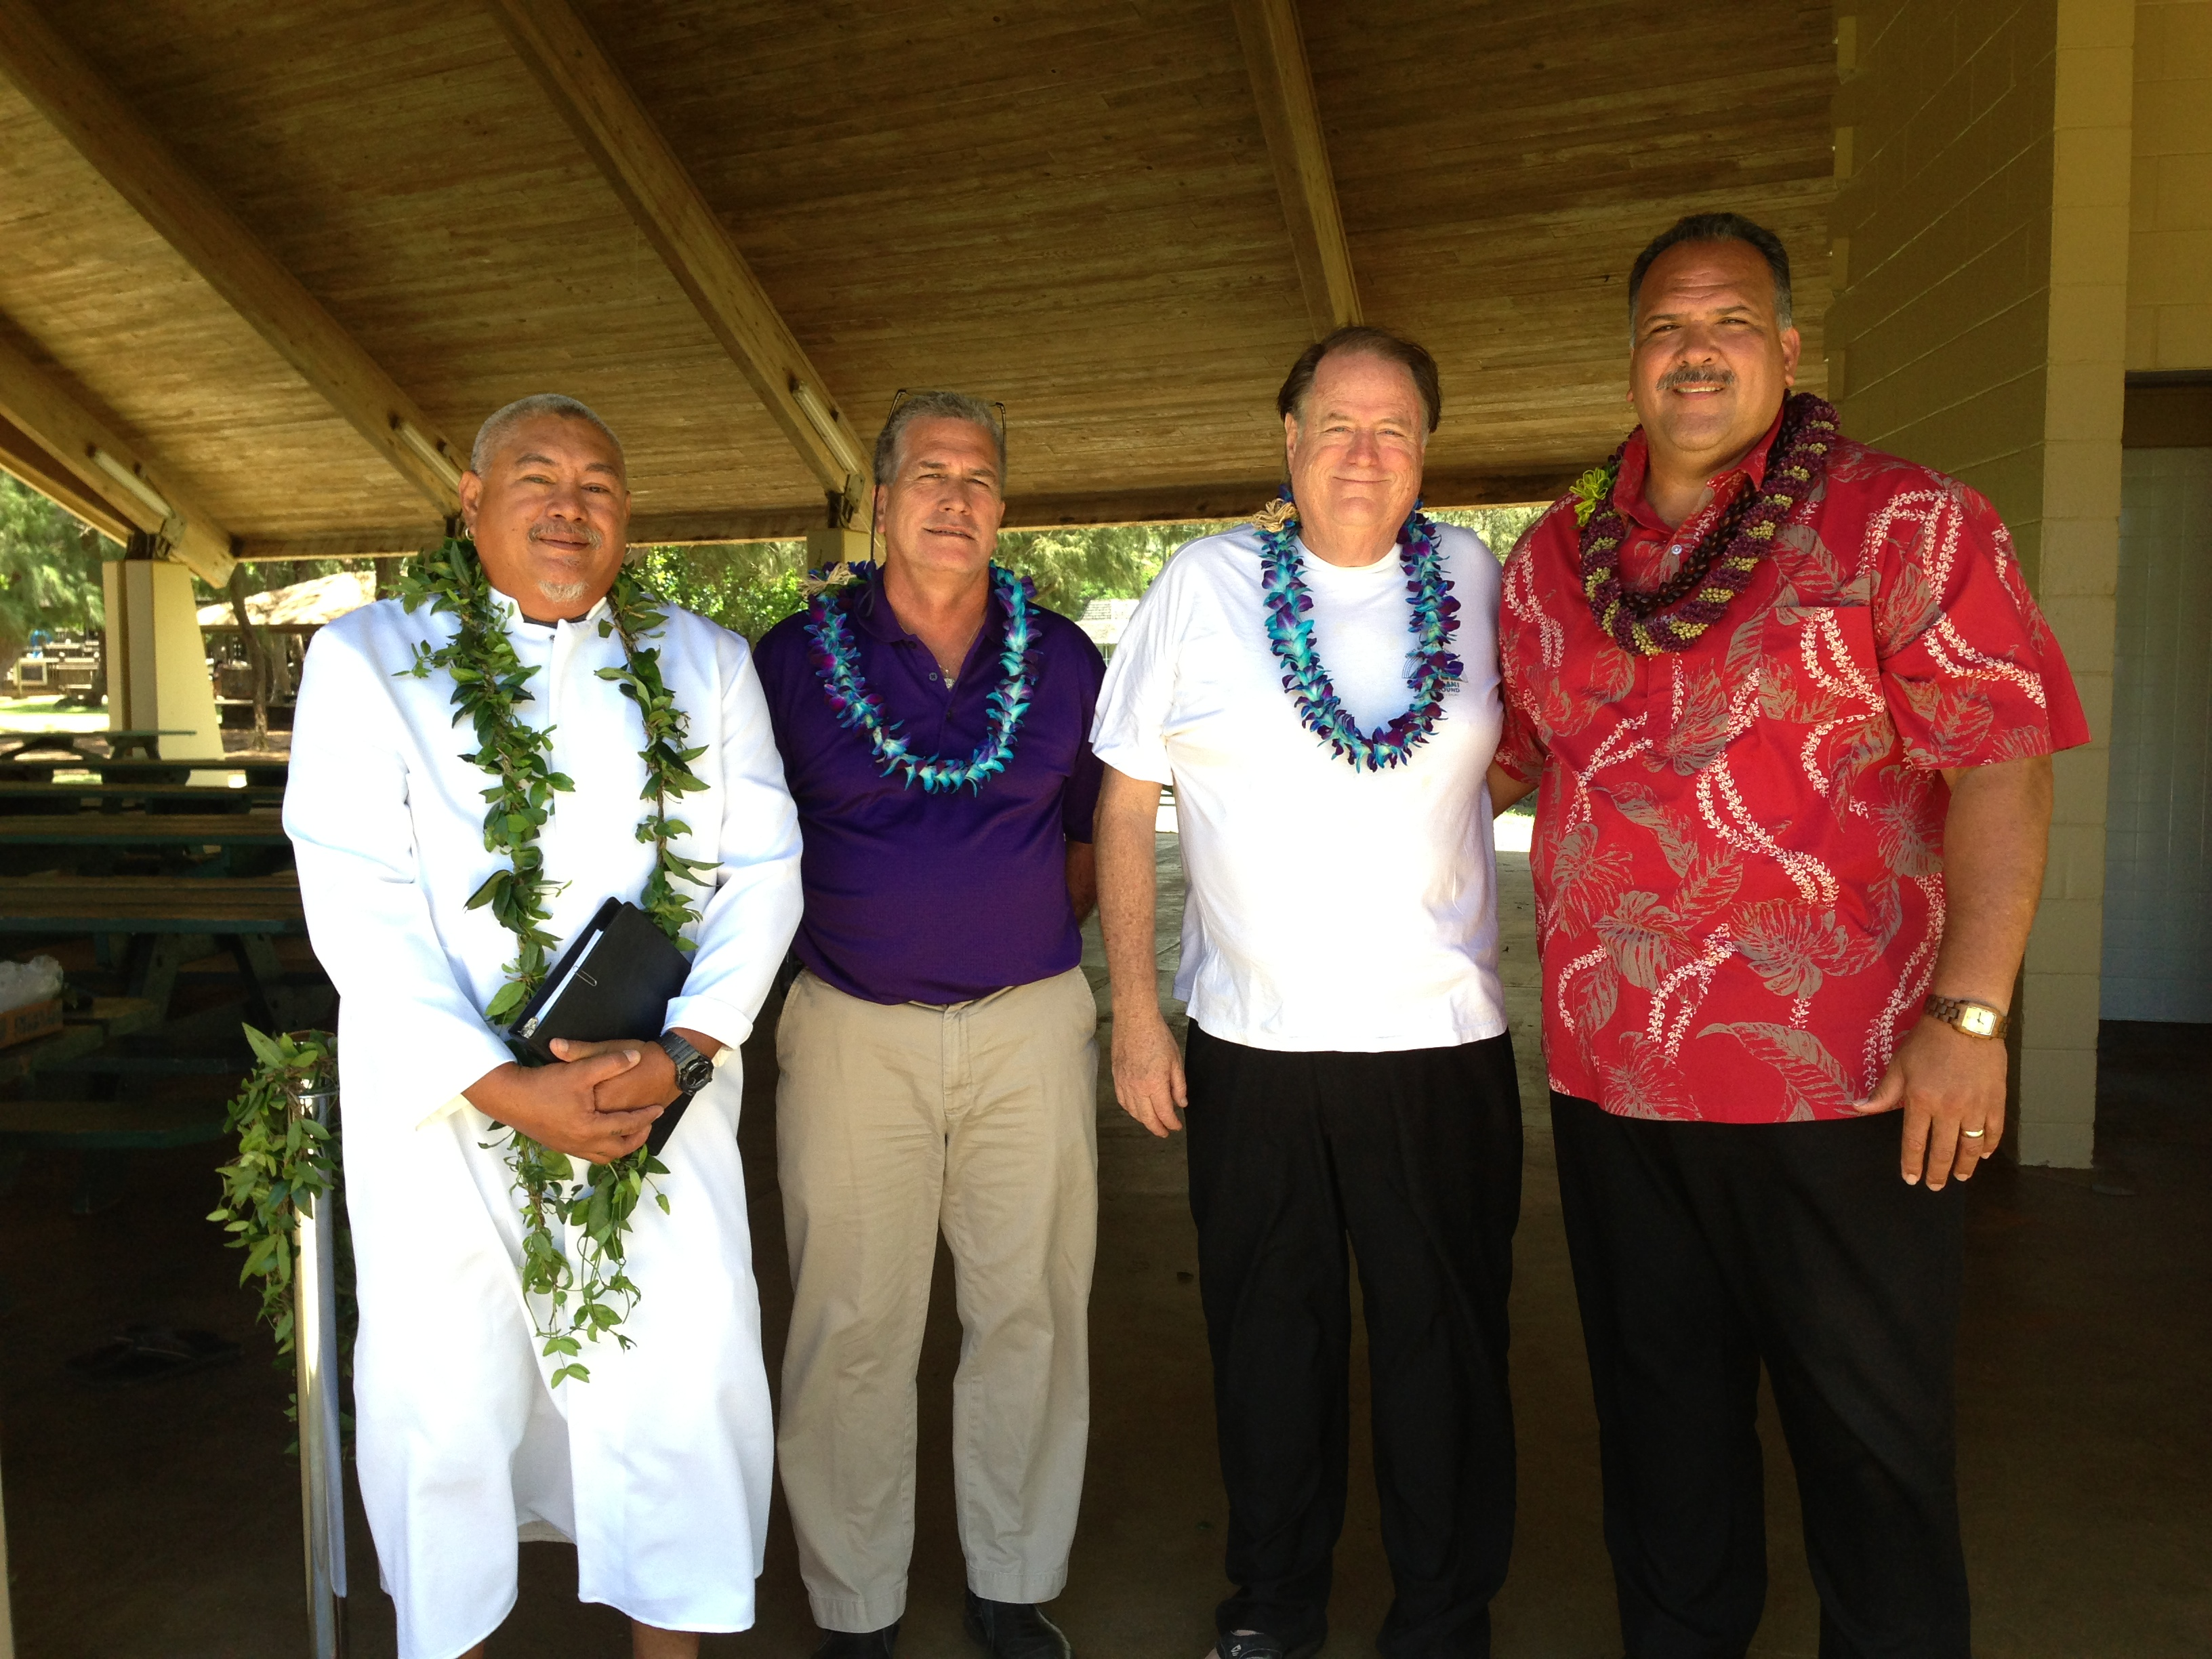 Kahu Poki Battad, Parks and Recreation Deputy Director Ian Costa, Councilman Tim Bynum and Mayor Bernard Carvalho, Jr. pose for a photo at the blessing that marked the completion of the Lydgate Park improvements project.